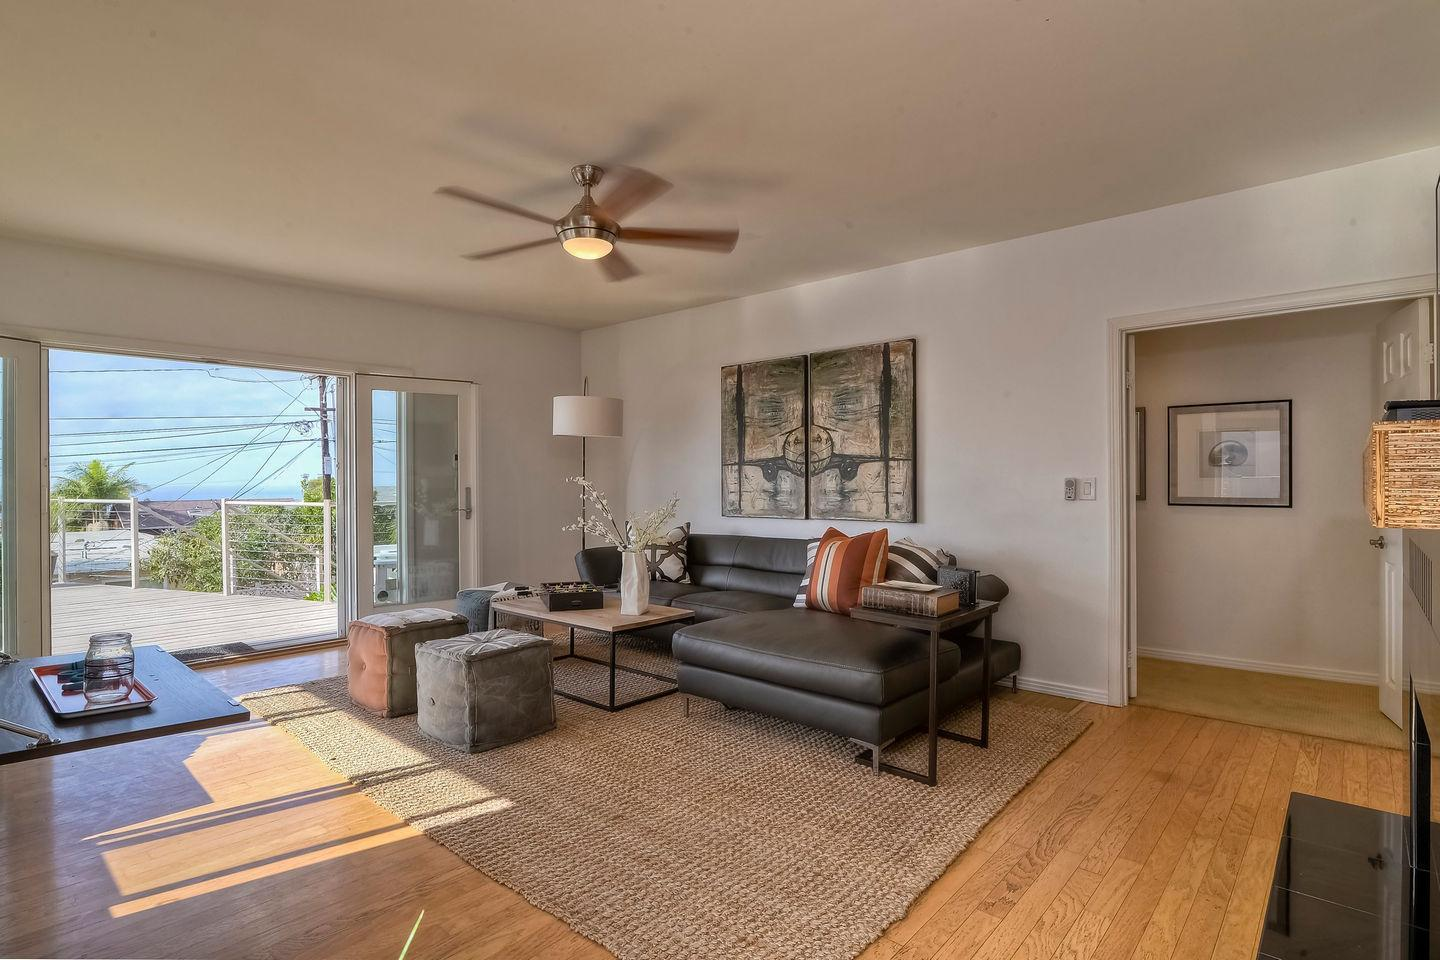 cardiff by the sea chatrooms See all available apartments for rent at elan cardiff by the sea in cardiff by the sea, ca elan cardiff by the sea has rental units ranging from 775-1160 sq ft starting at $1845.